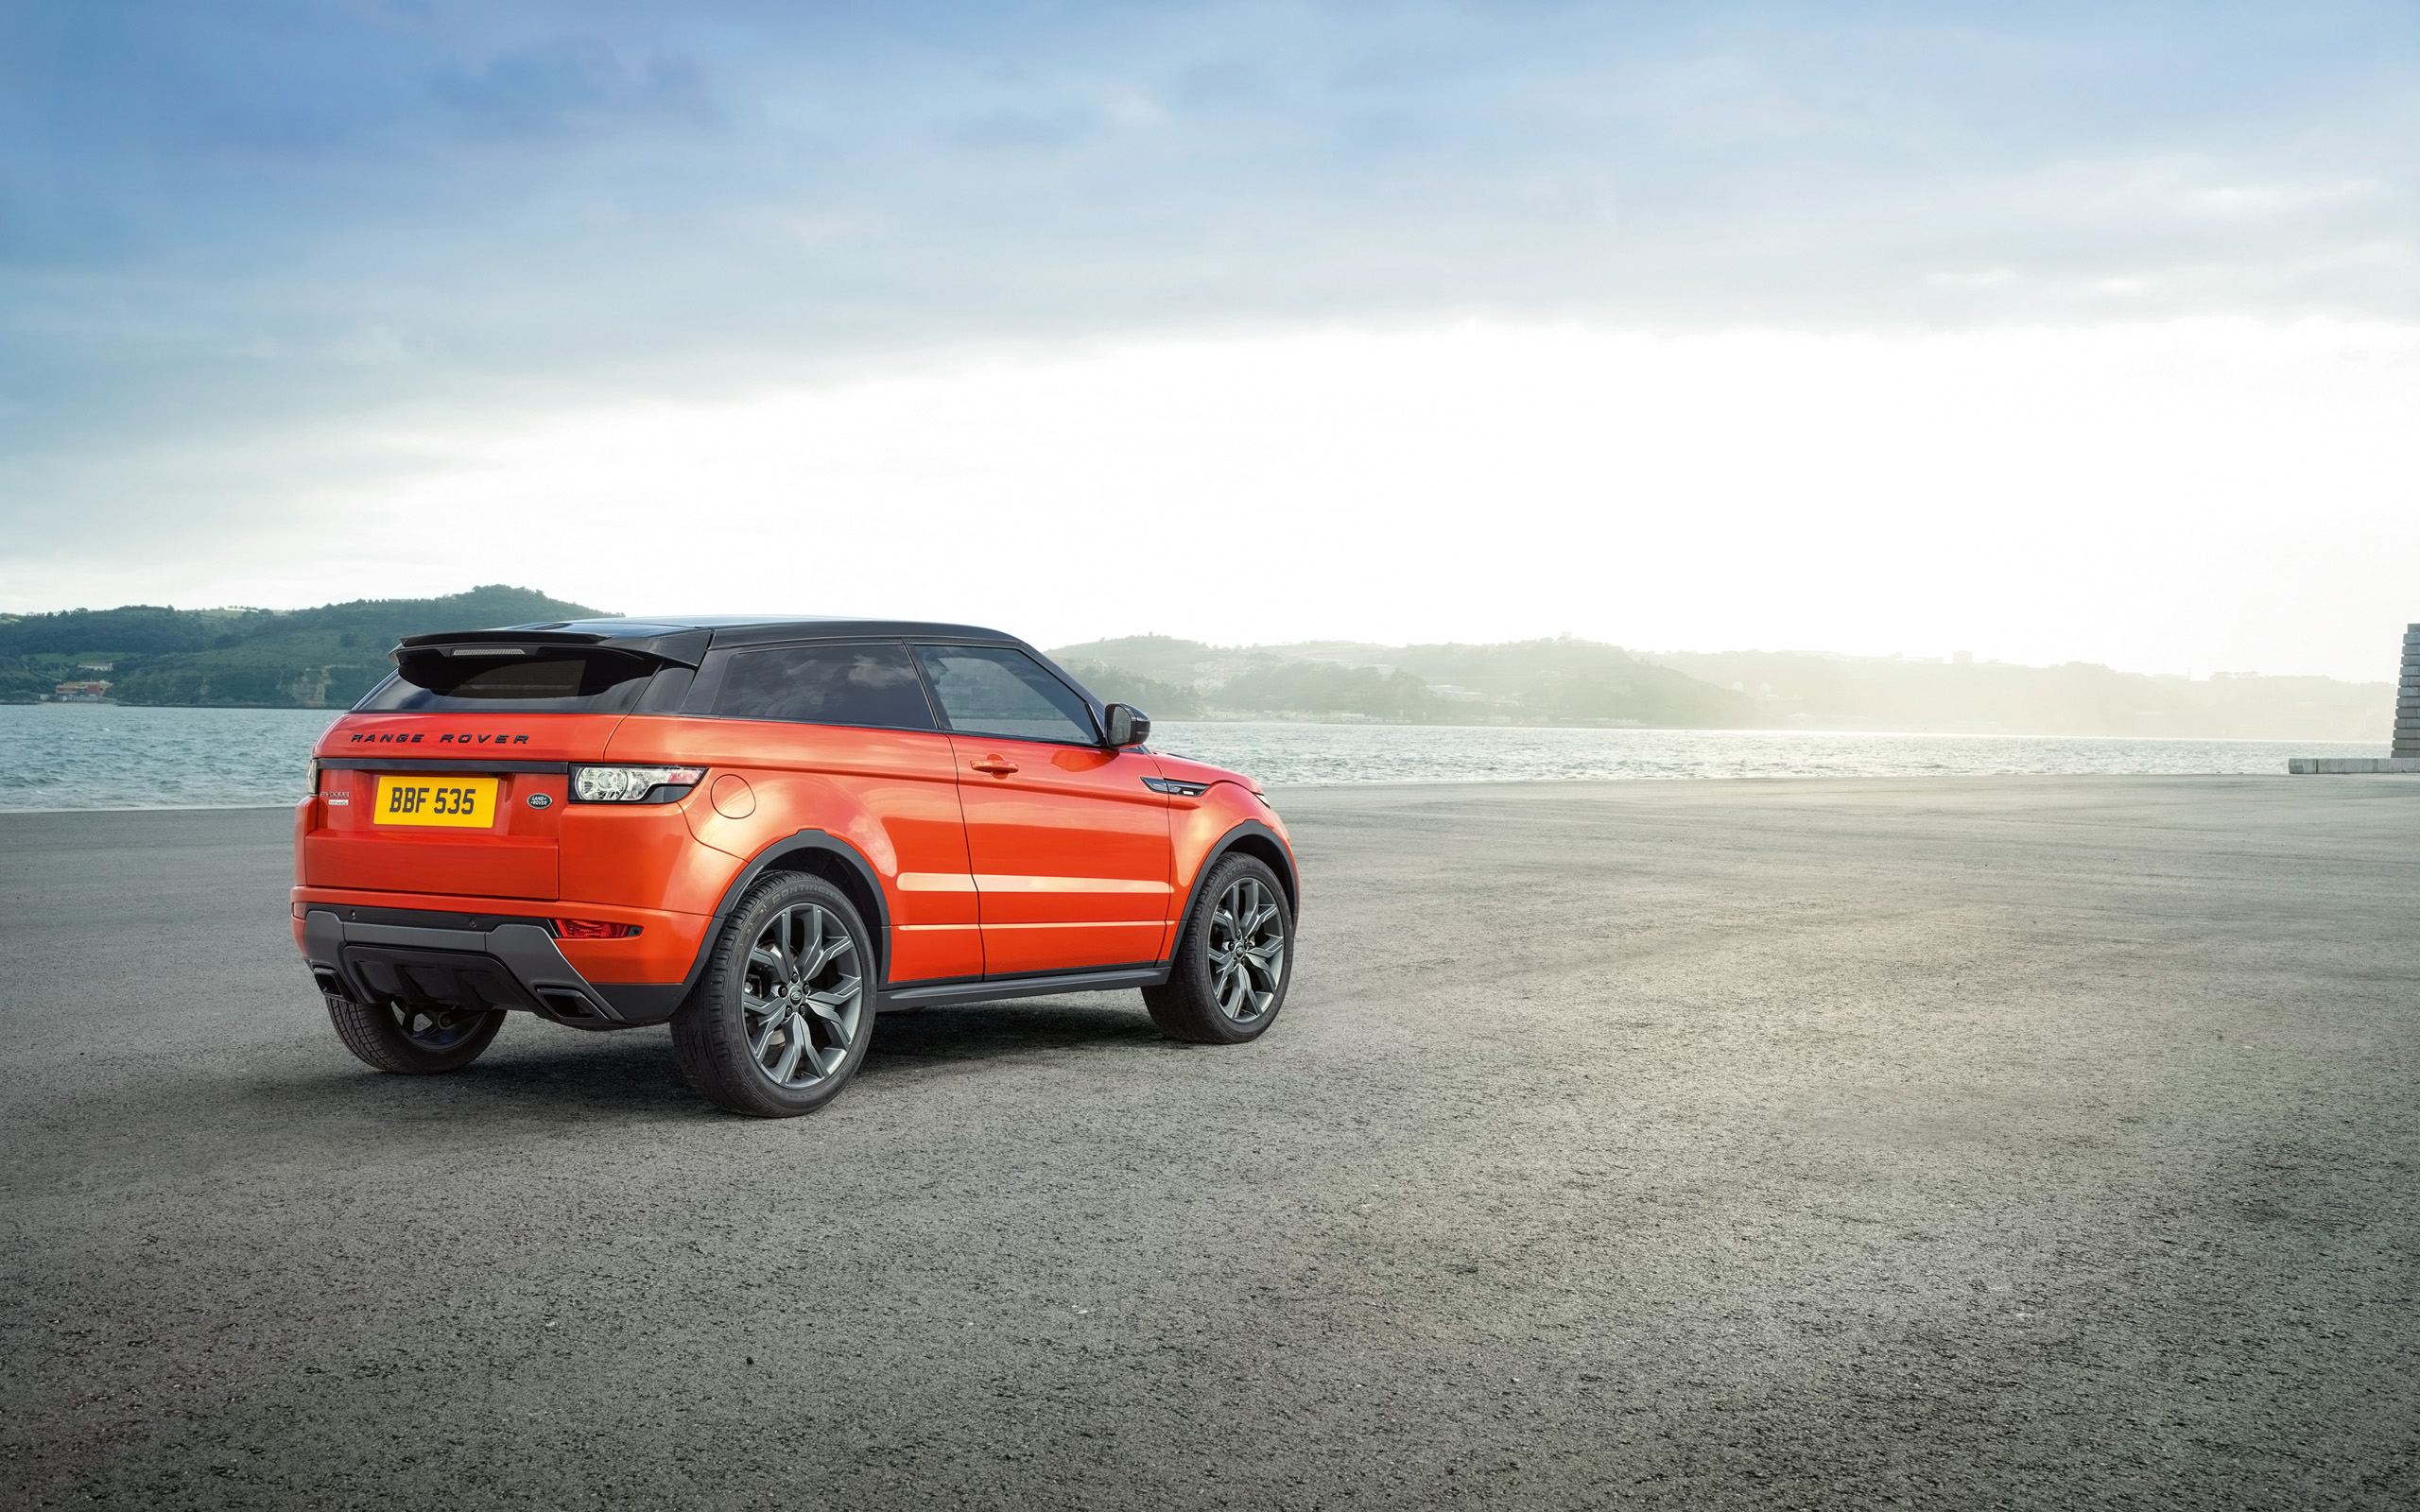 2015 range rover evoque autobiography 4 wallpaper hd car wallpapers id 4231. Black Bedroom Furniture Sets. Home Design Ideas